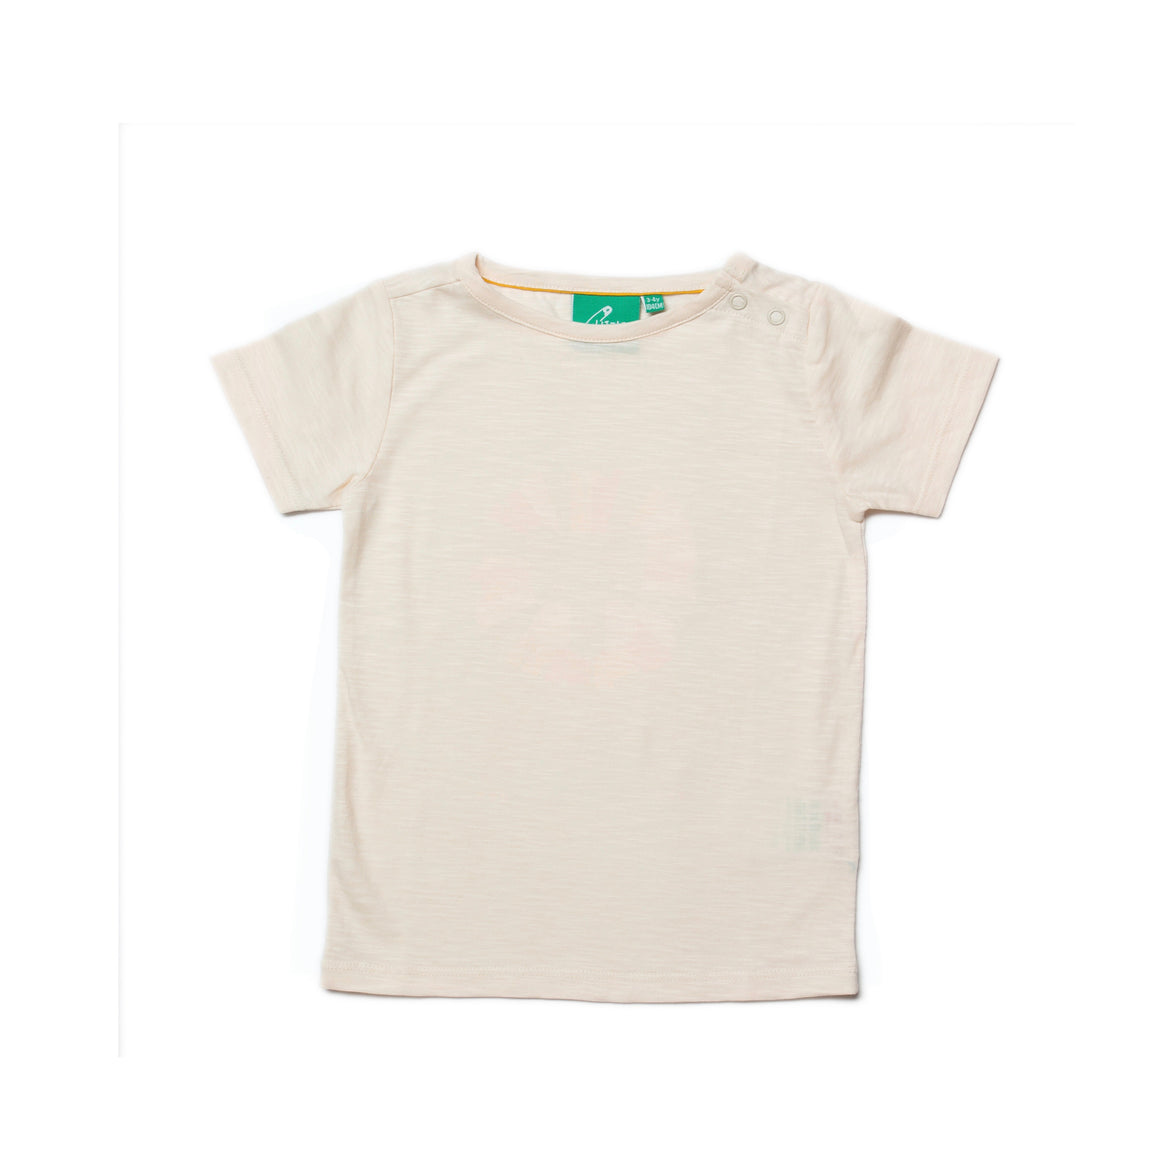 New Little Green Radicals powderpuff cream t-shirt size 0-3 months